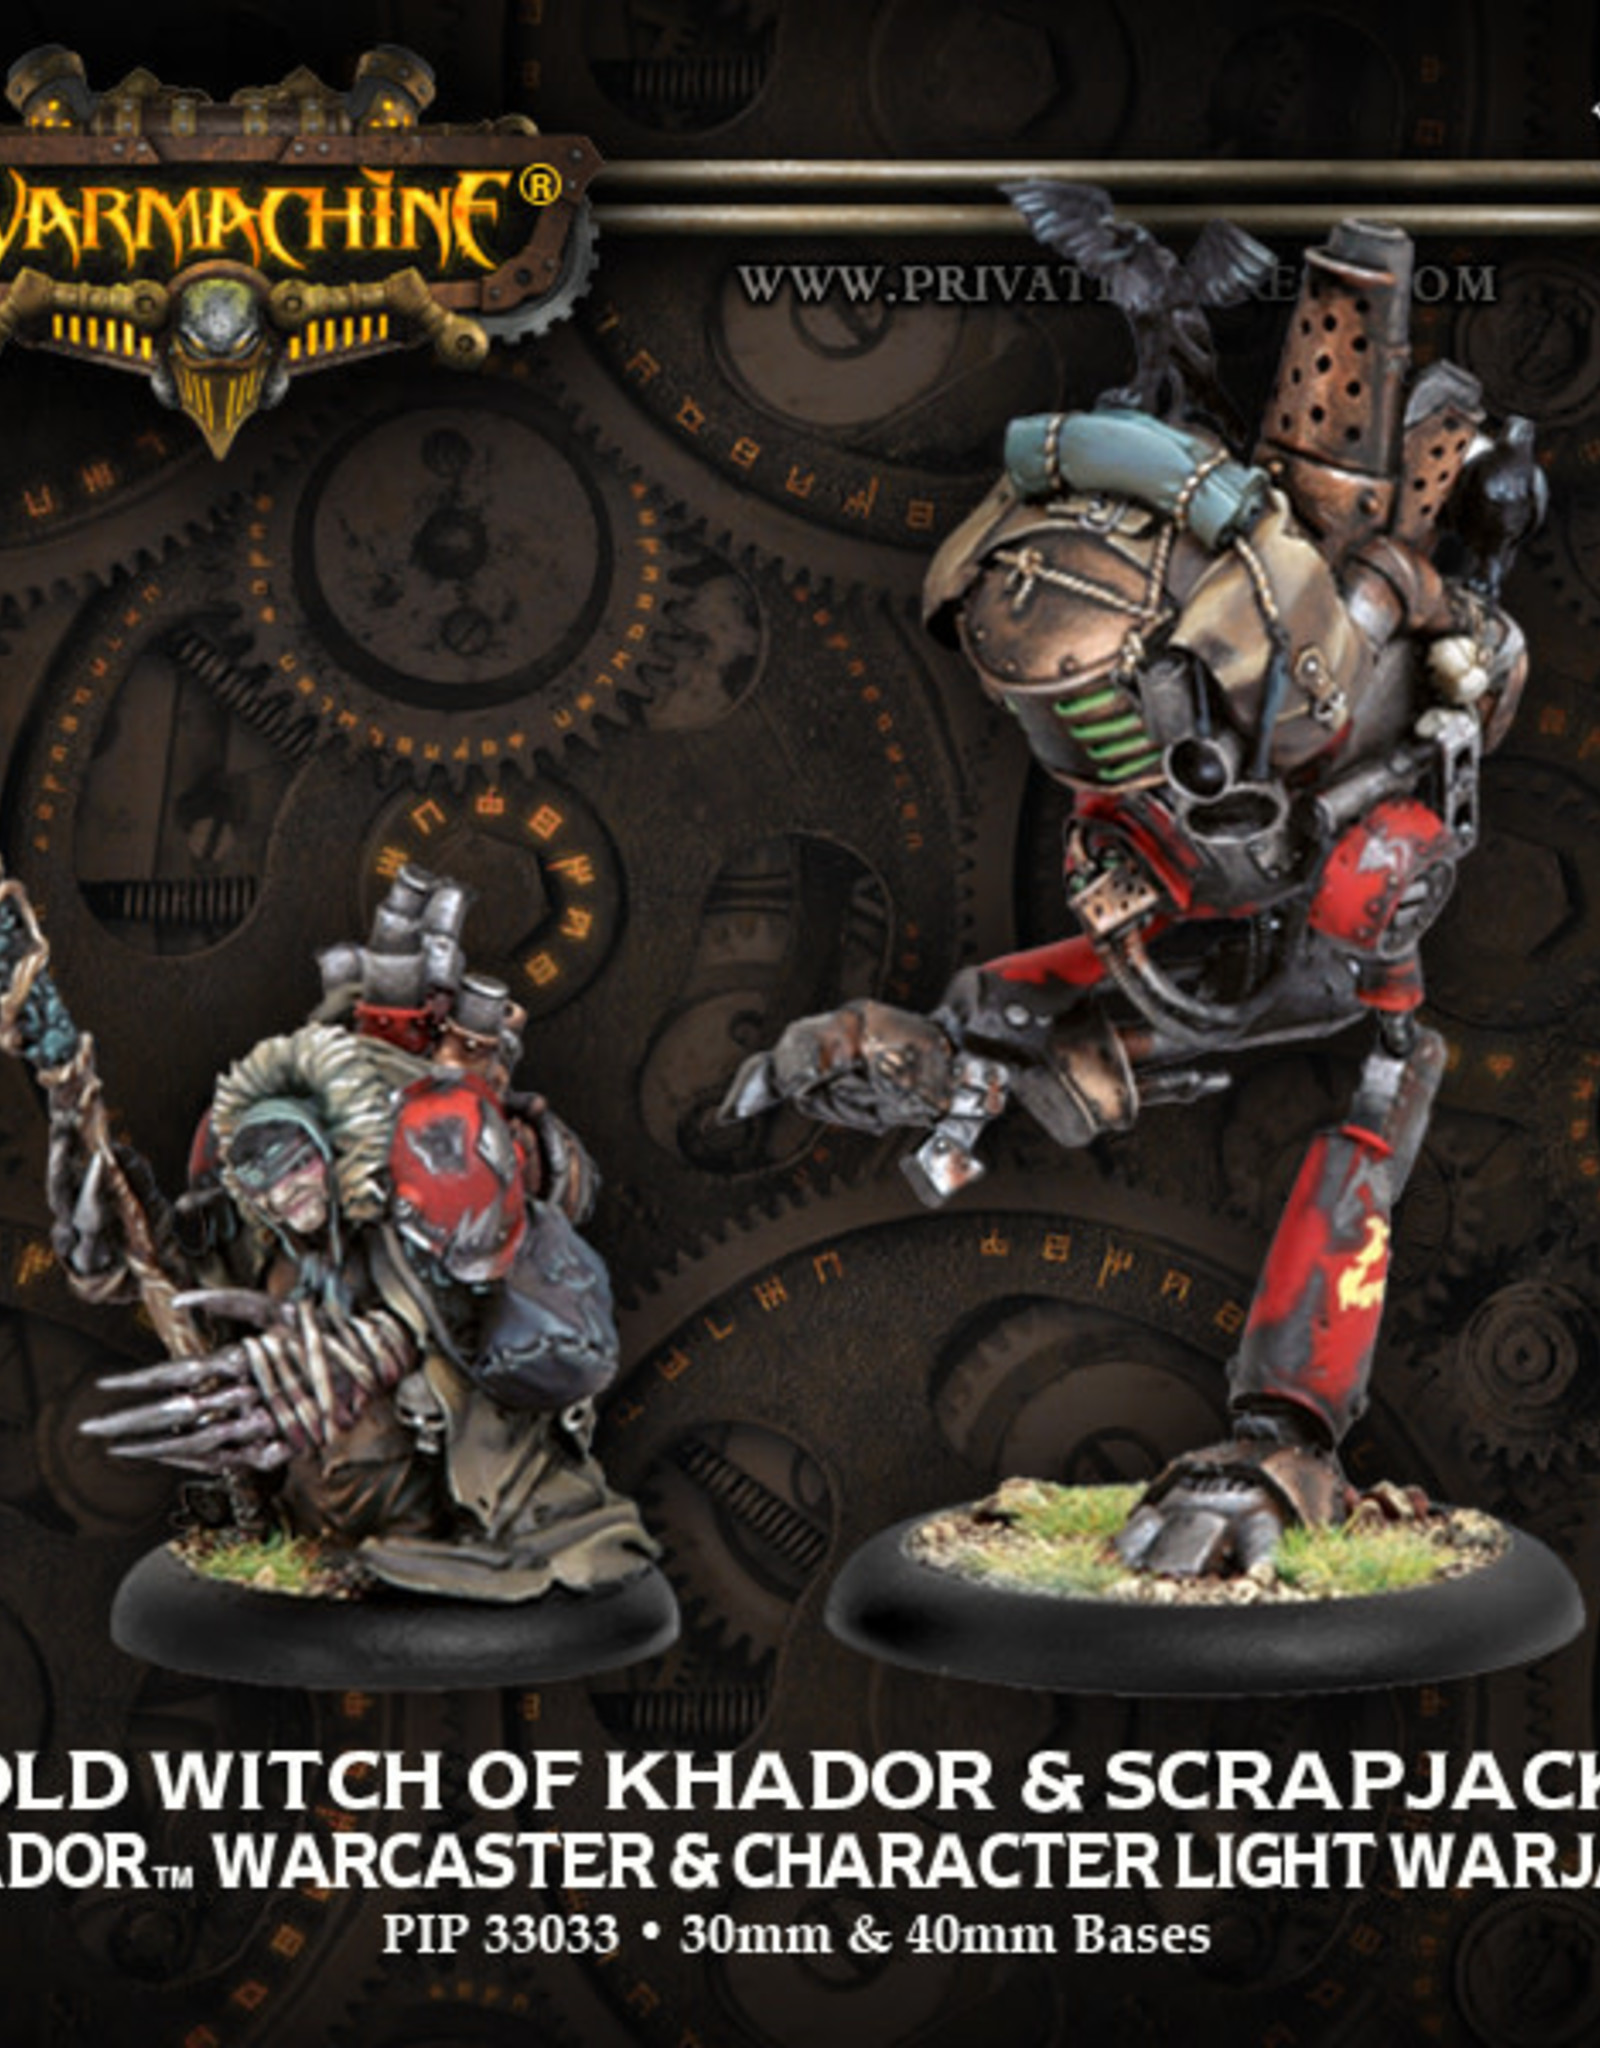 Warmachine Khador - Old Witch